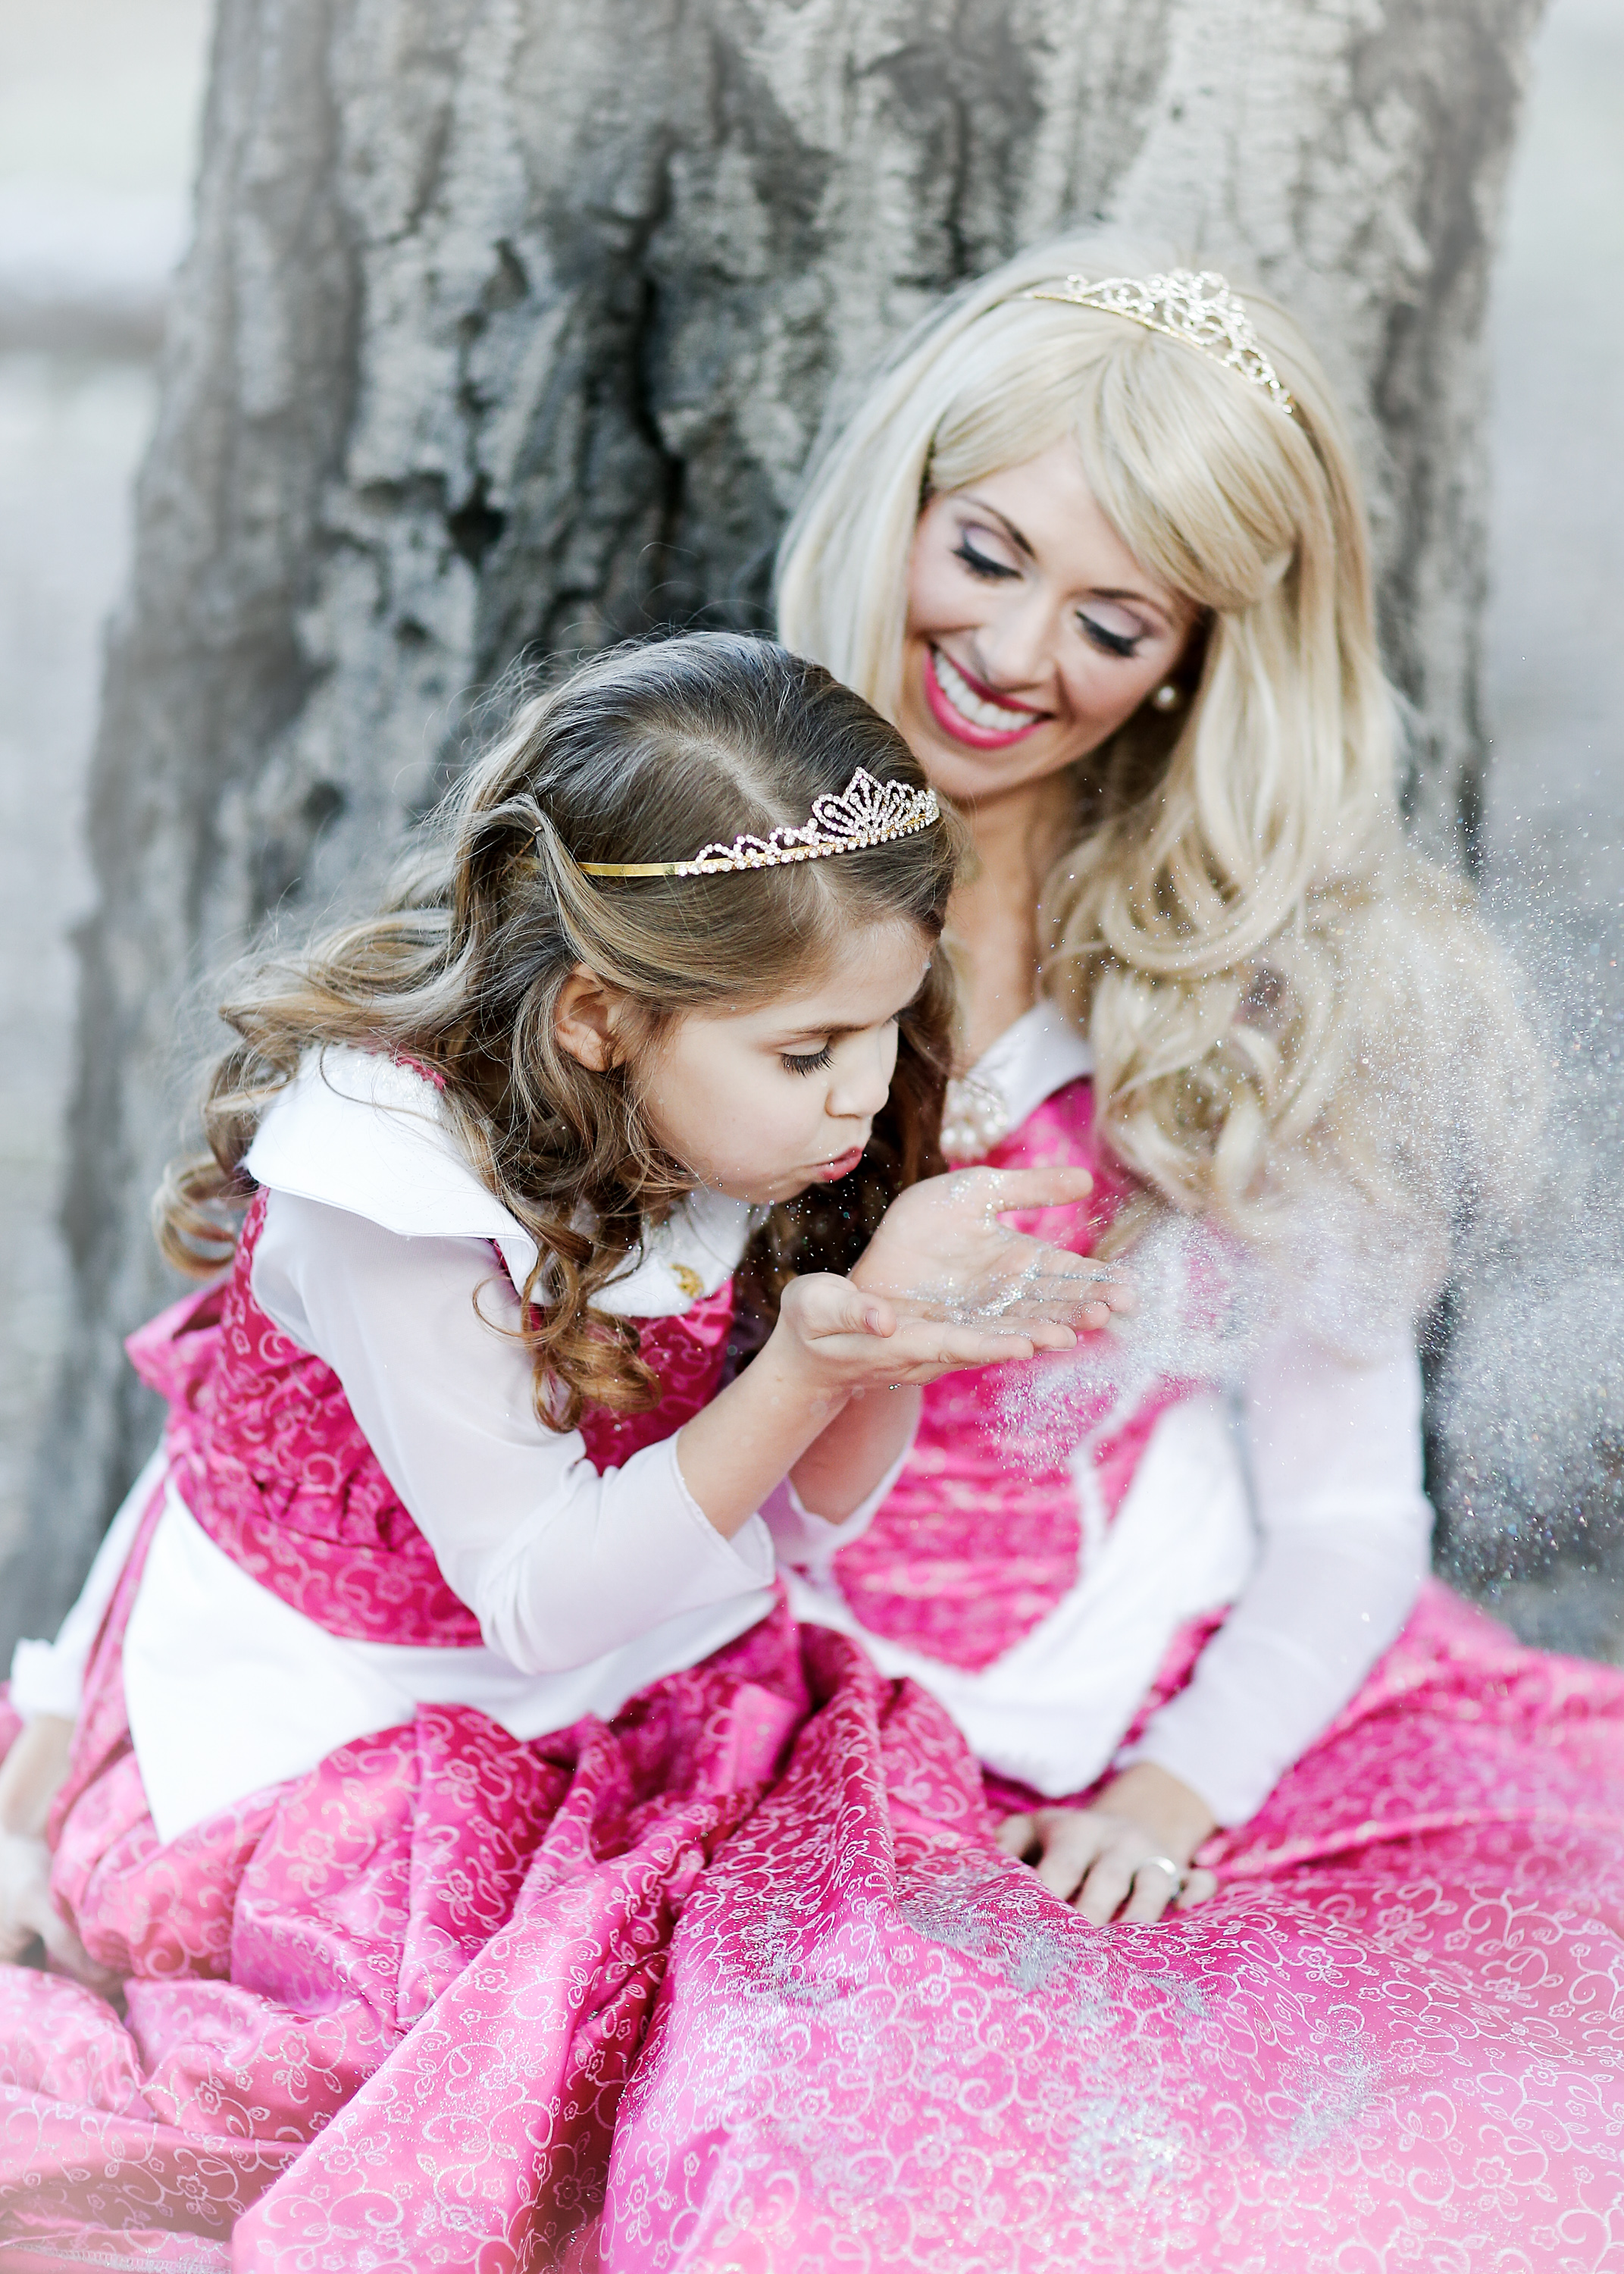 Mother-Daughter - Meagan is a beautiful soul and owner of an amazing company that gives her the opportunity to spread magic and love wherever she goes (in costume of course).She takes pictures with little ones celebrating birthdays all year long and she knew it was time to schedule a session with her own daughter. She wanted a special mother-daughter portrait series in matching princess dresses and we captured the magic of that moment in beautiful outdoor series.What is your vision? Let's make it happen!